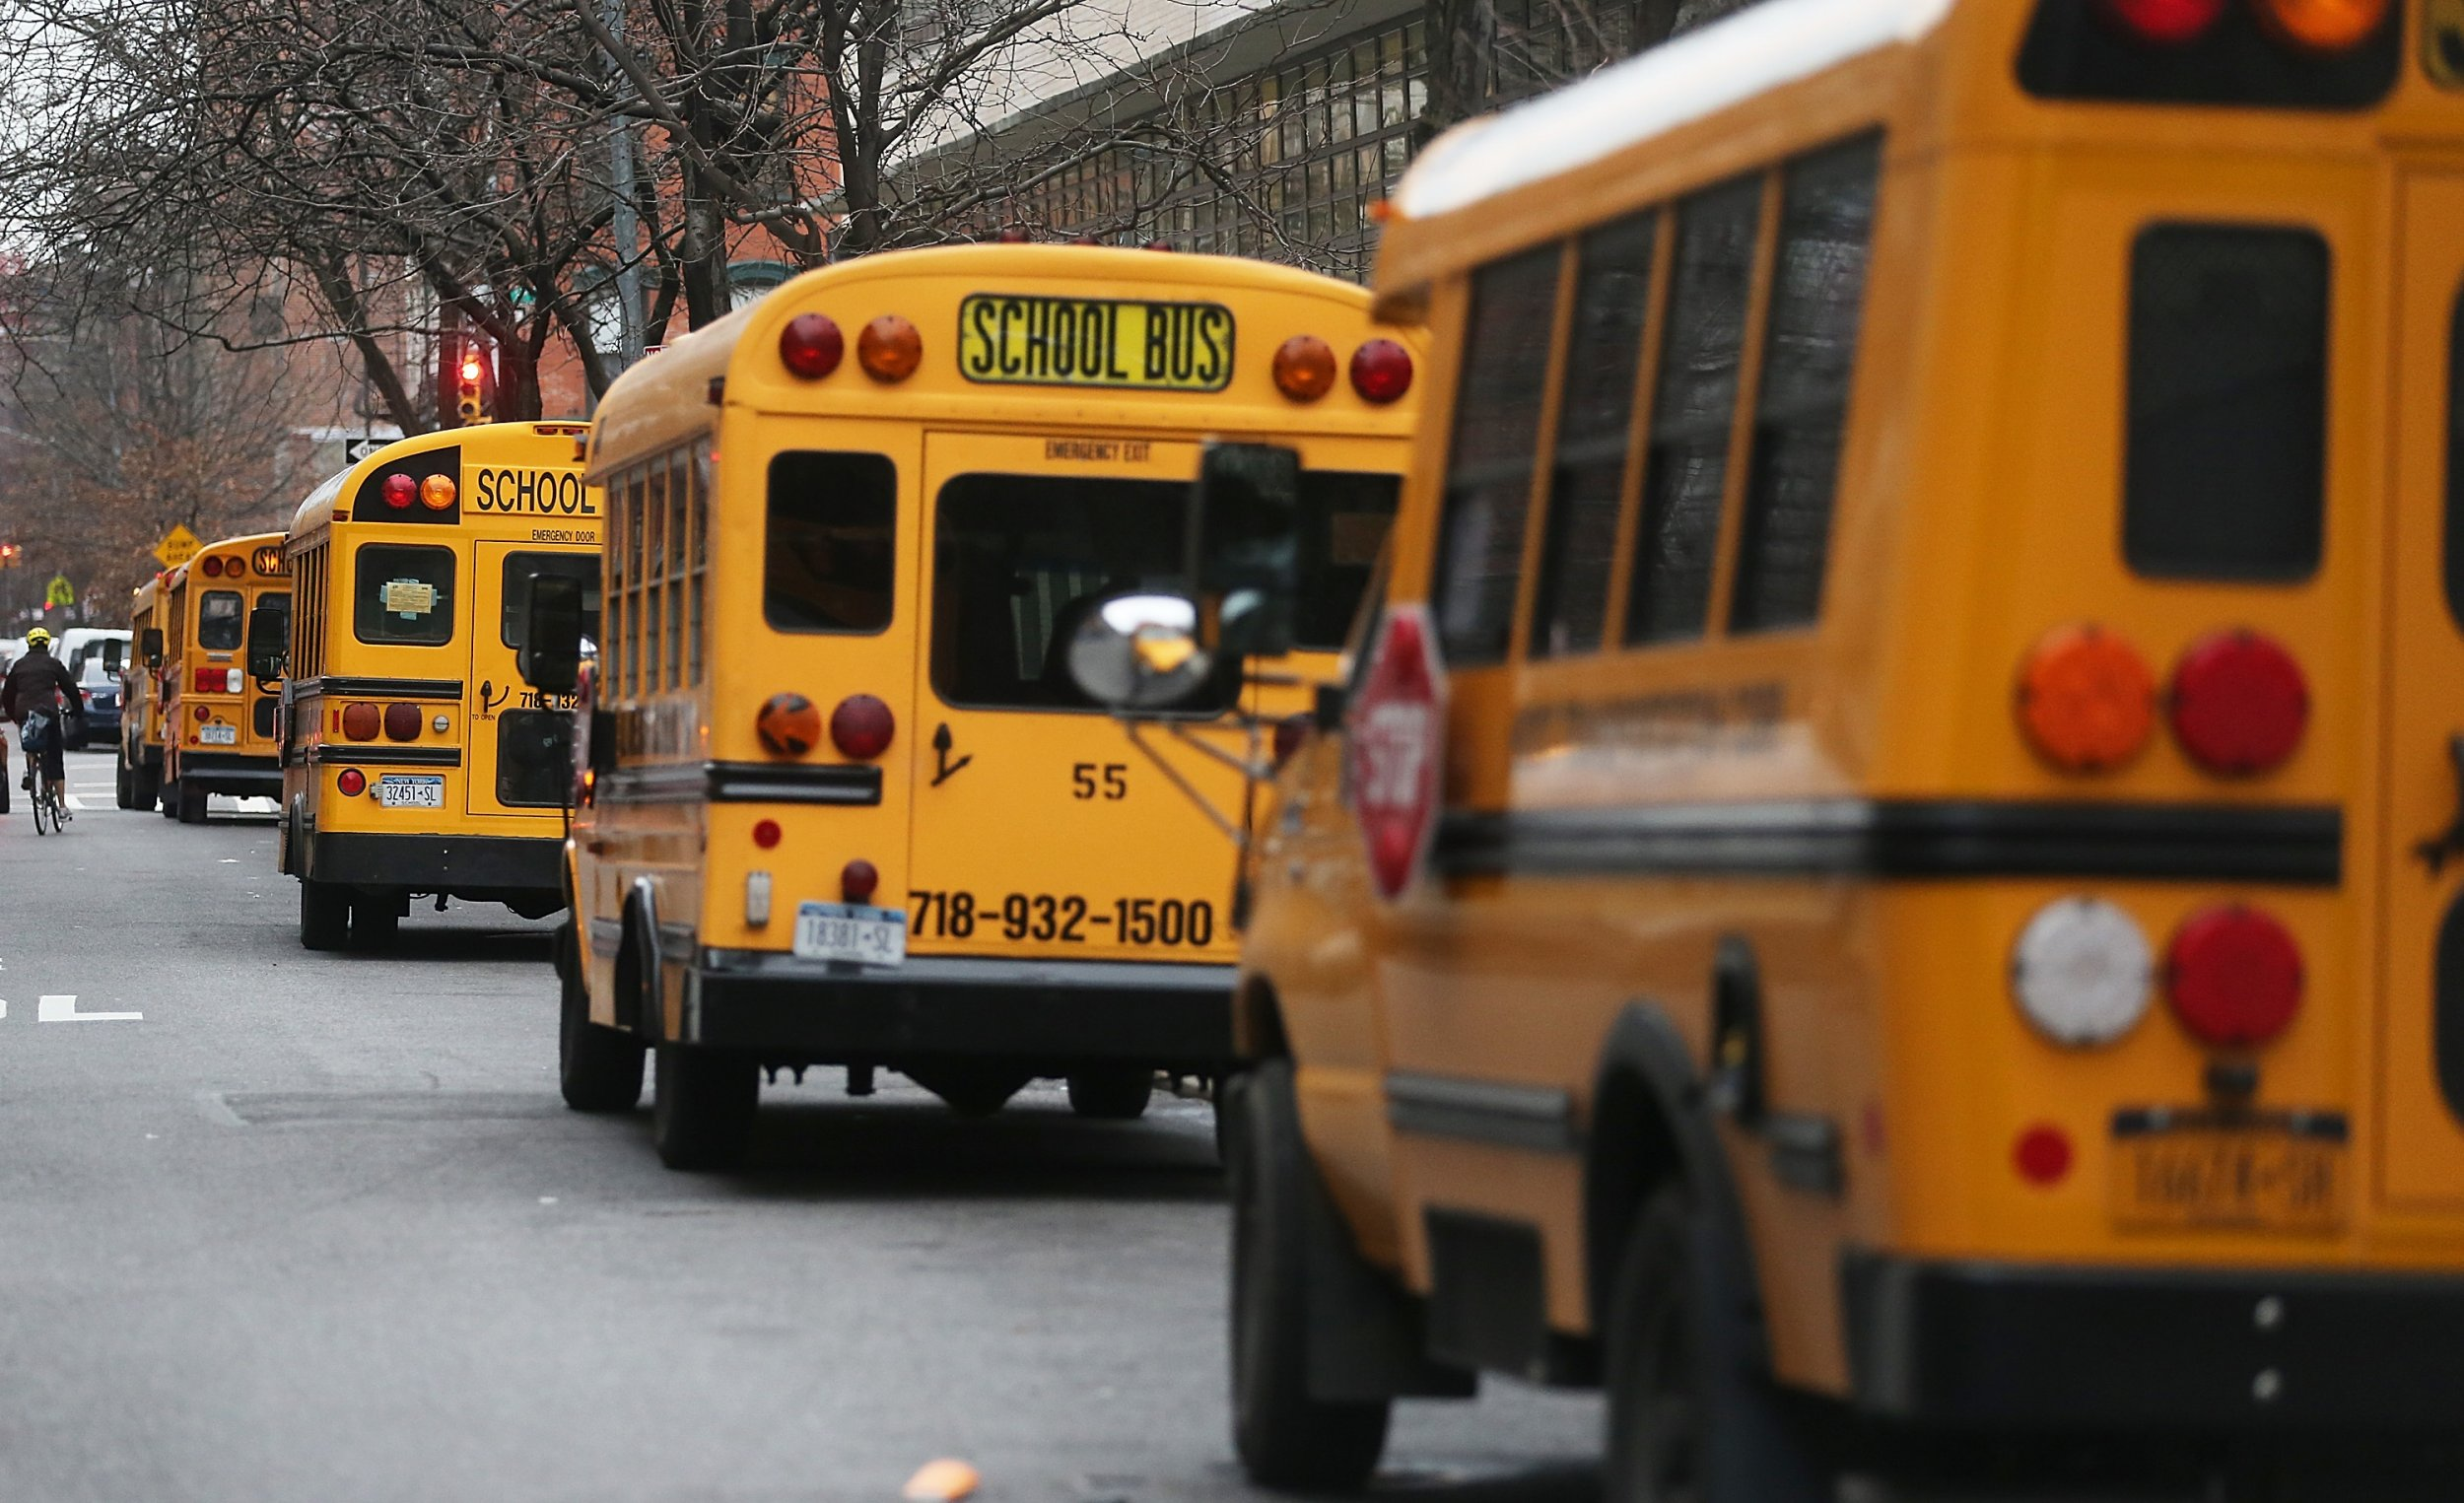 School bus, Facebook, viral video, ohio, bullying